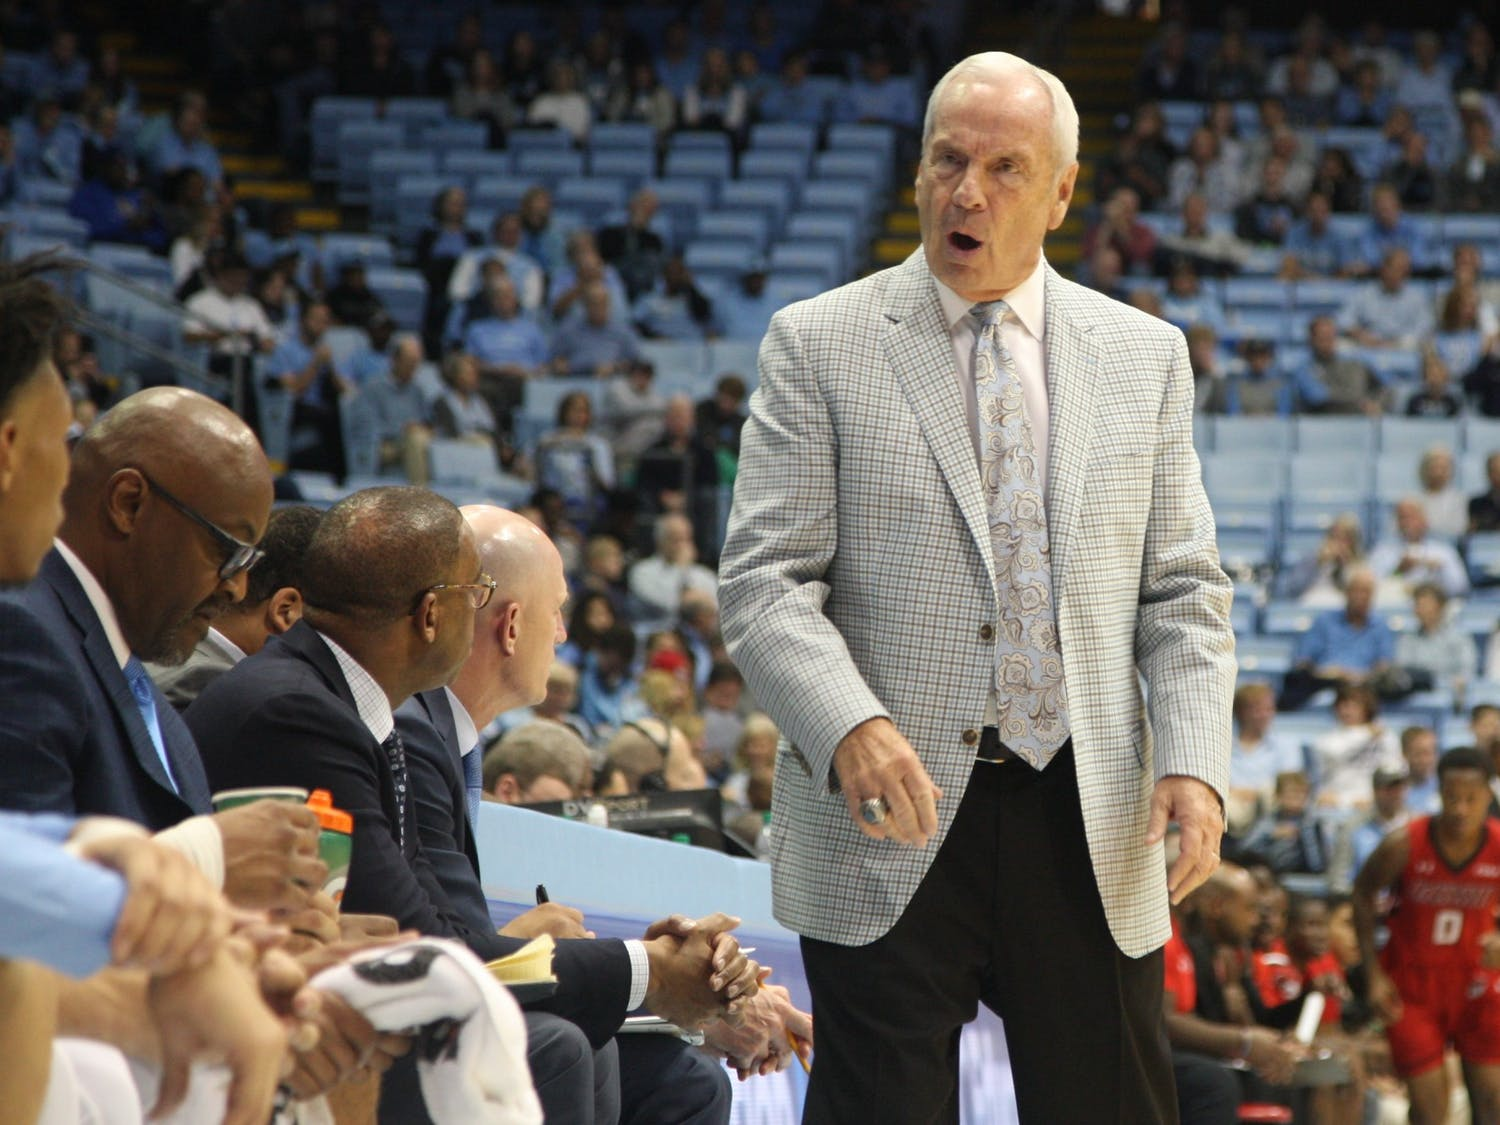 Head Coach Roy Williams yells at the bench during the exhibition game against Winston-Salem State in the Smith Center on Friday, Nov. 1, 2019. UNC beat WSSU 96-61.